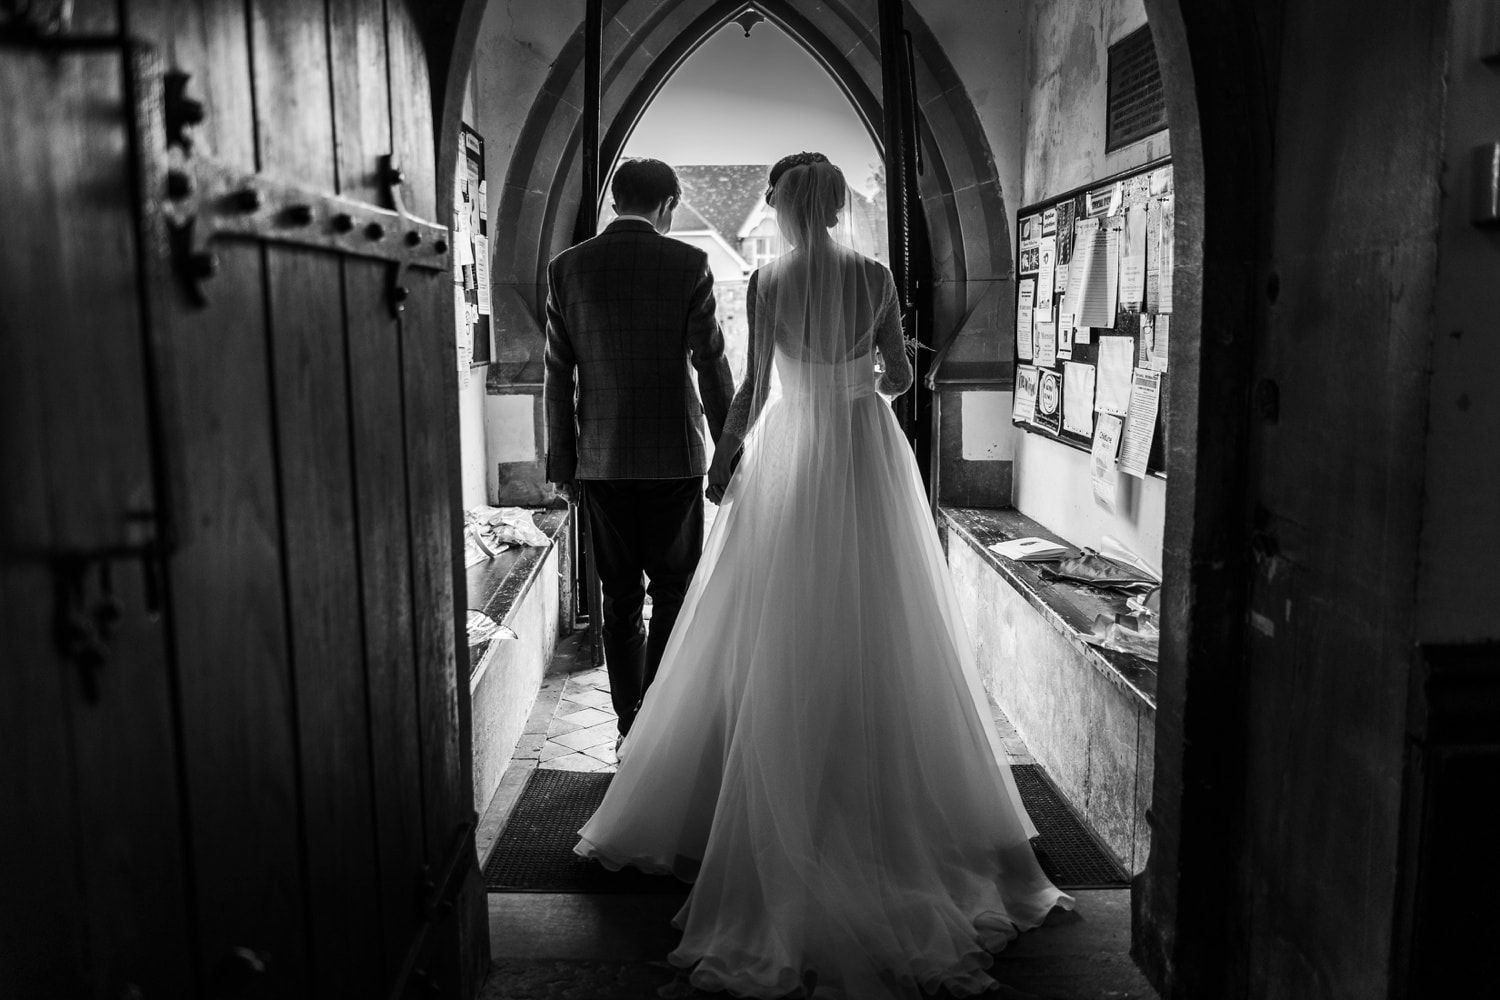 Bride and groom walk through church door